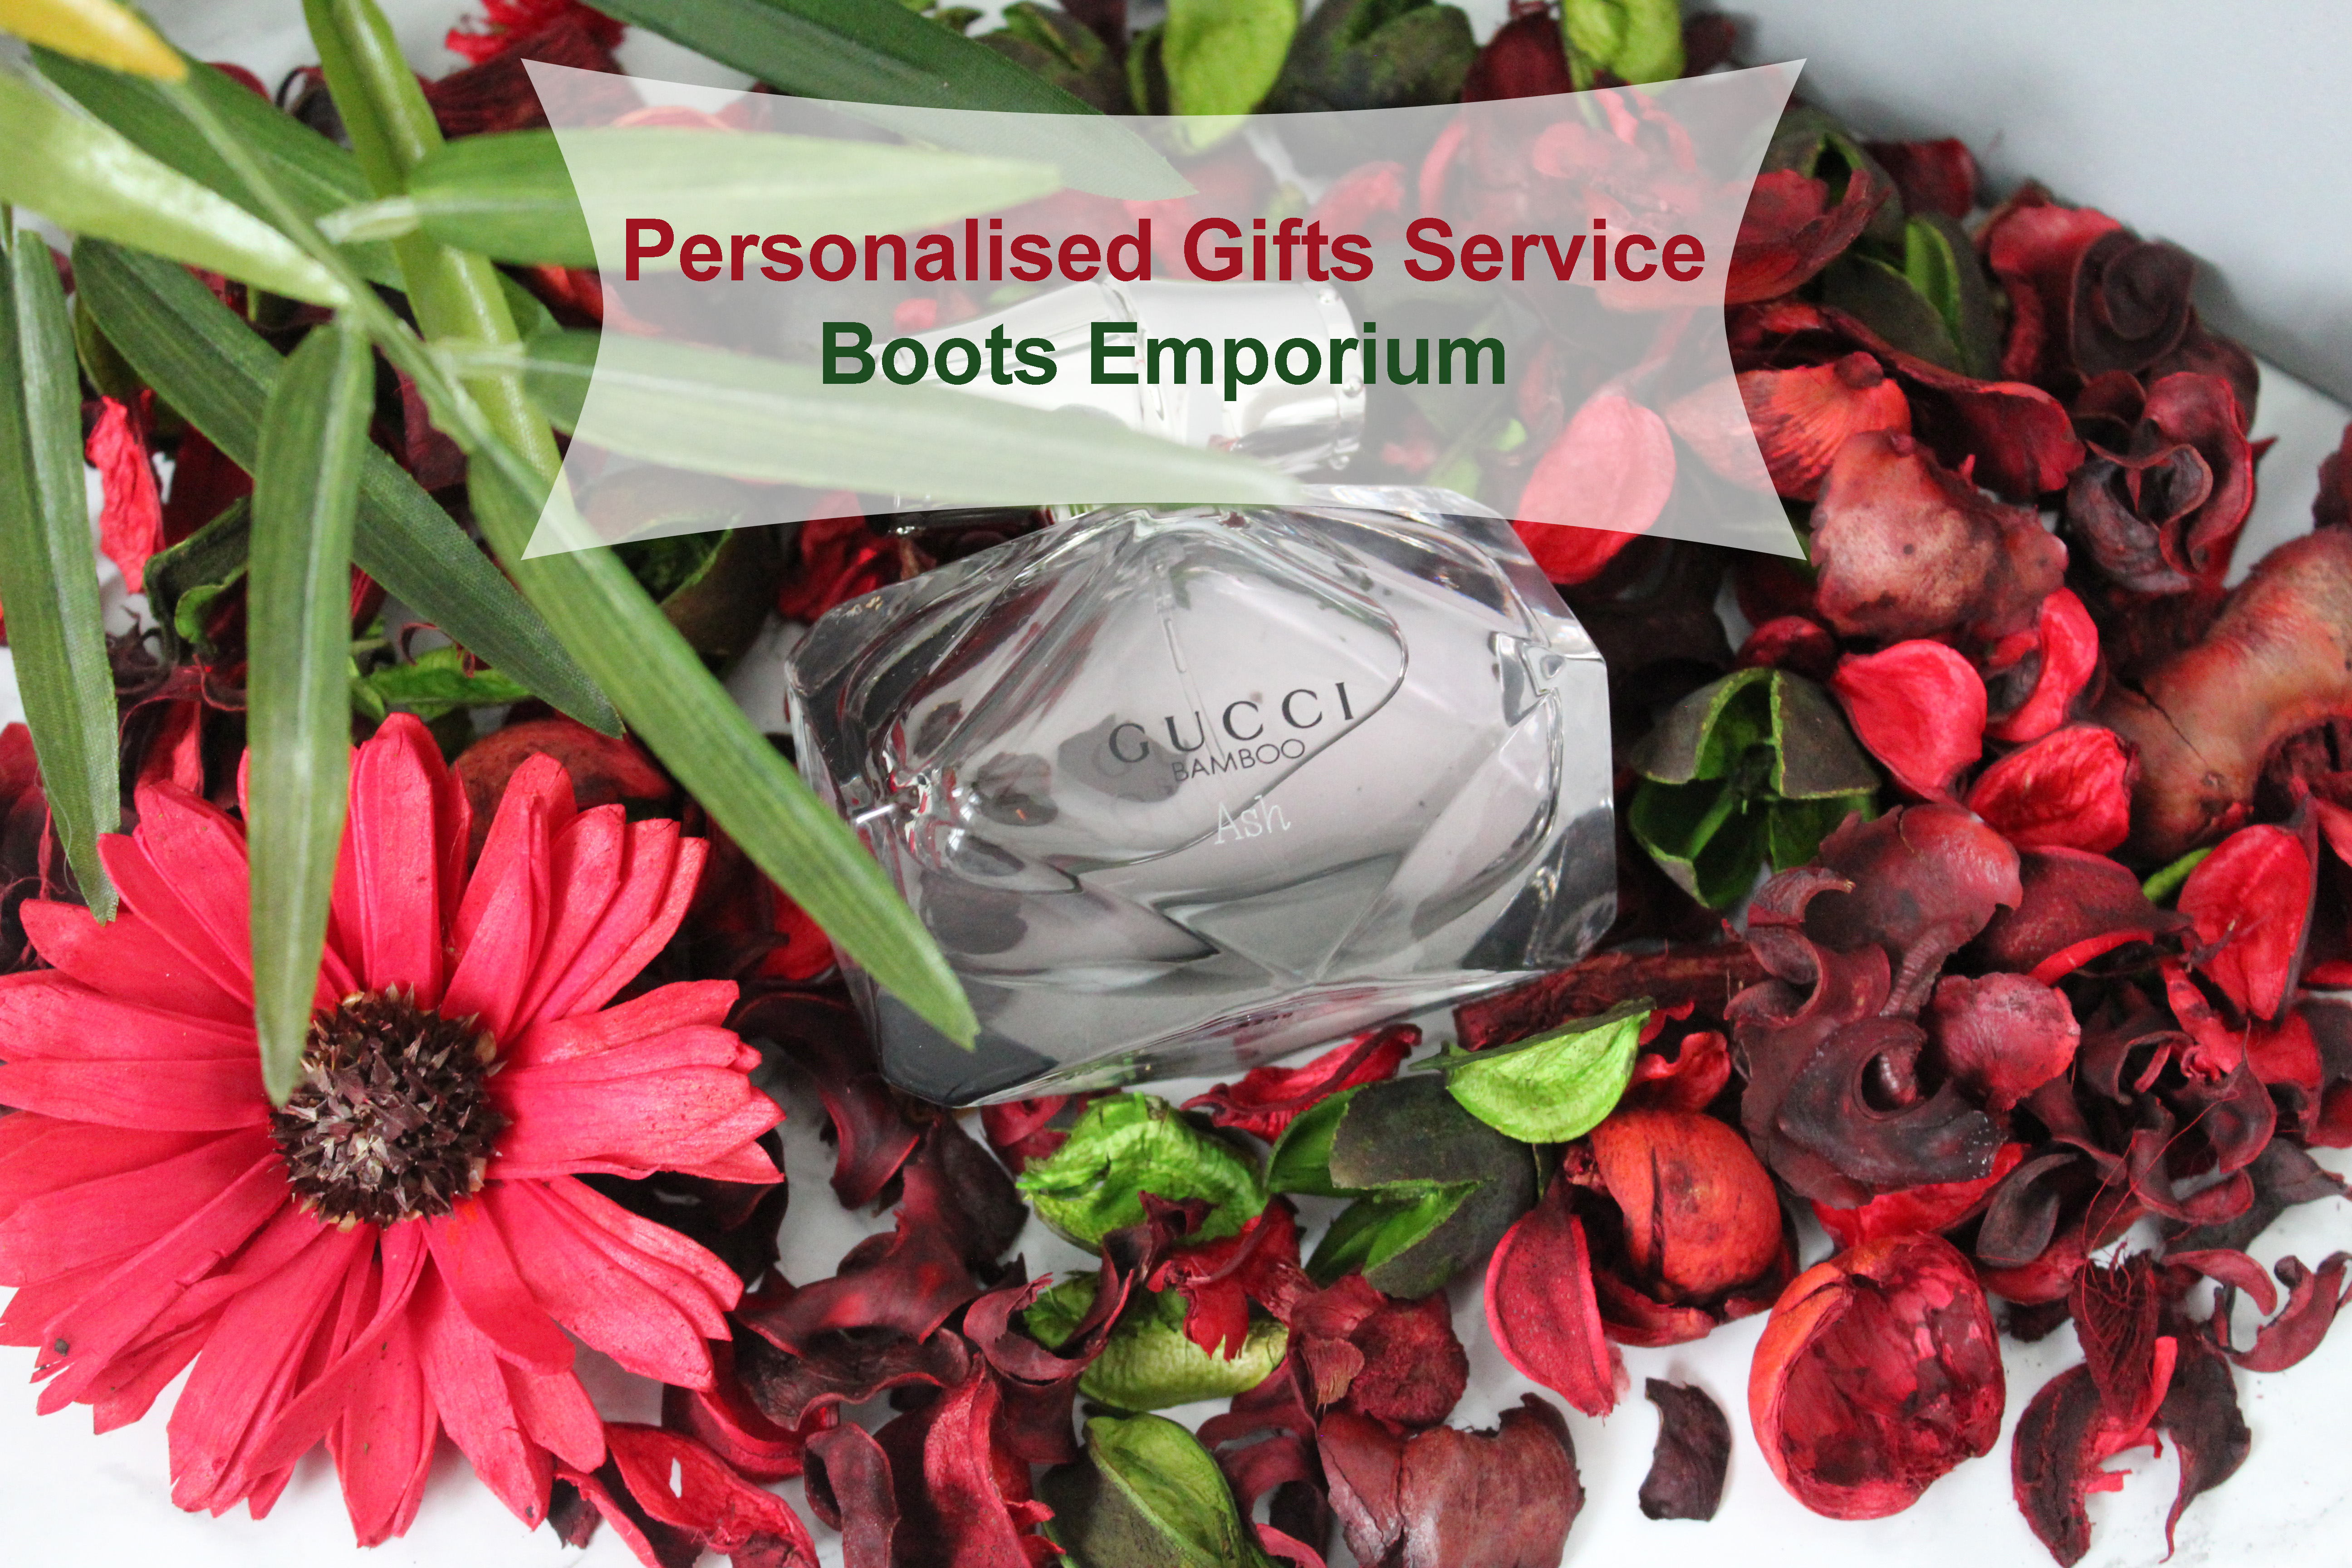 Personalised Gifts Service by Boots Emporium